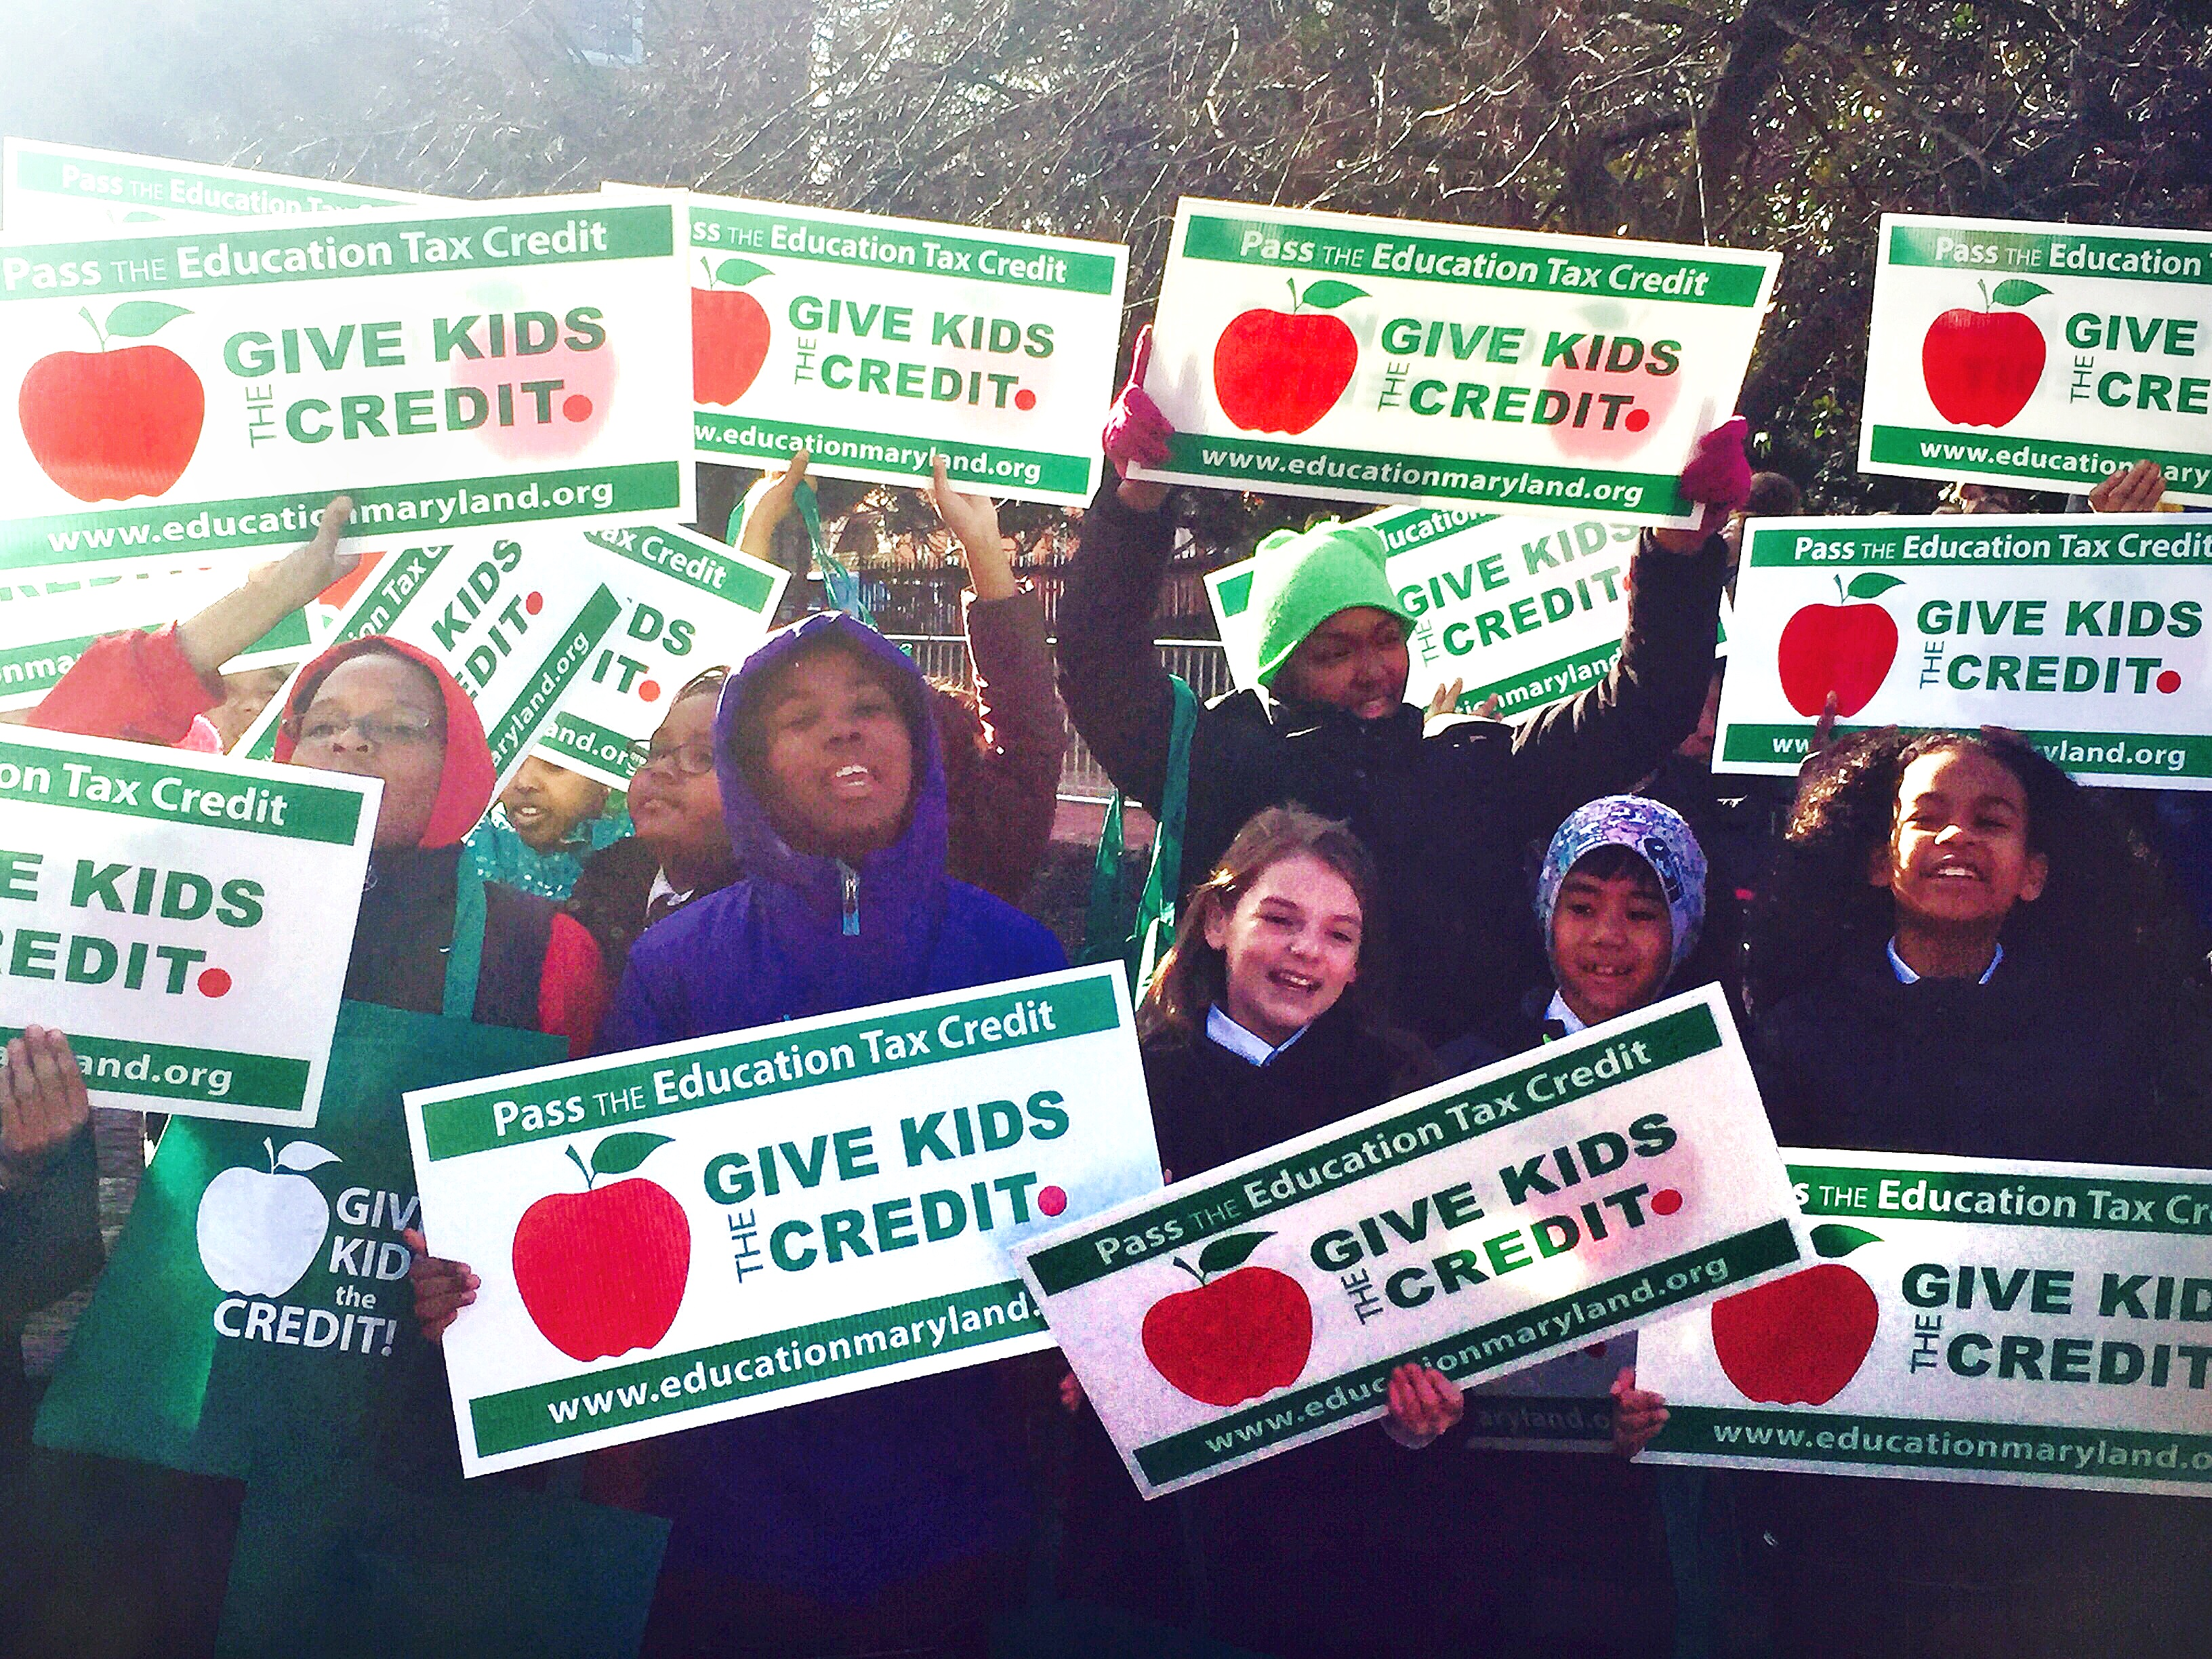 Supporters say Maryland Education Credit would provide more opportunities